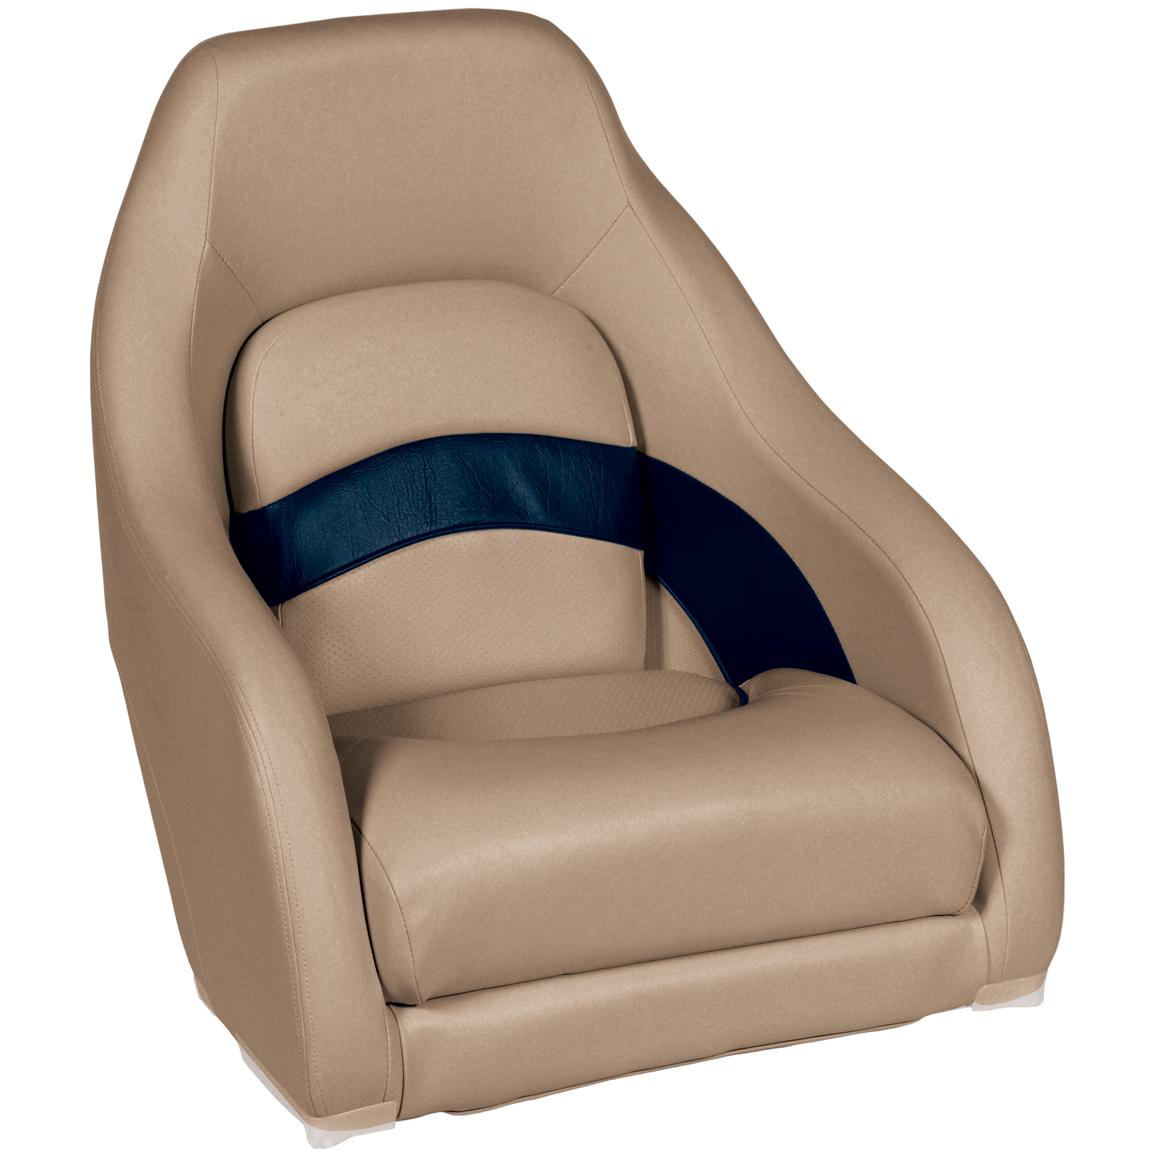 Wise Premier 1100 Series Pontoon Captain's Bucket Seat, Color D: Mocha / Mocha Java Punch / Navy / Rock Salt